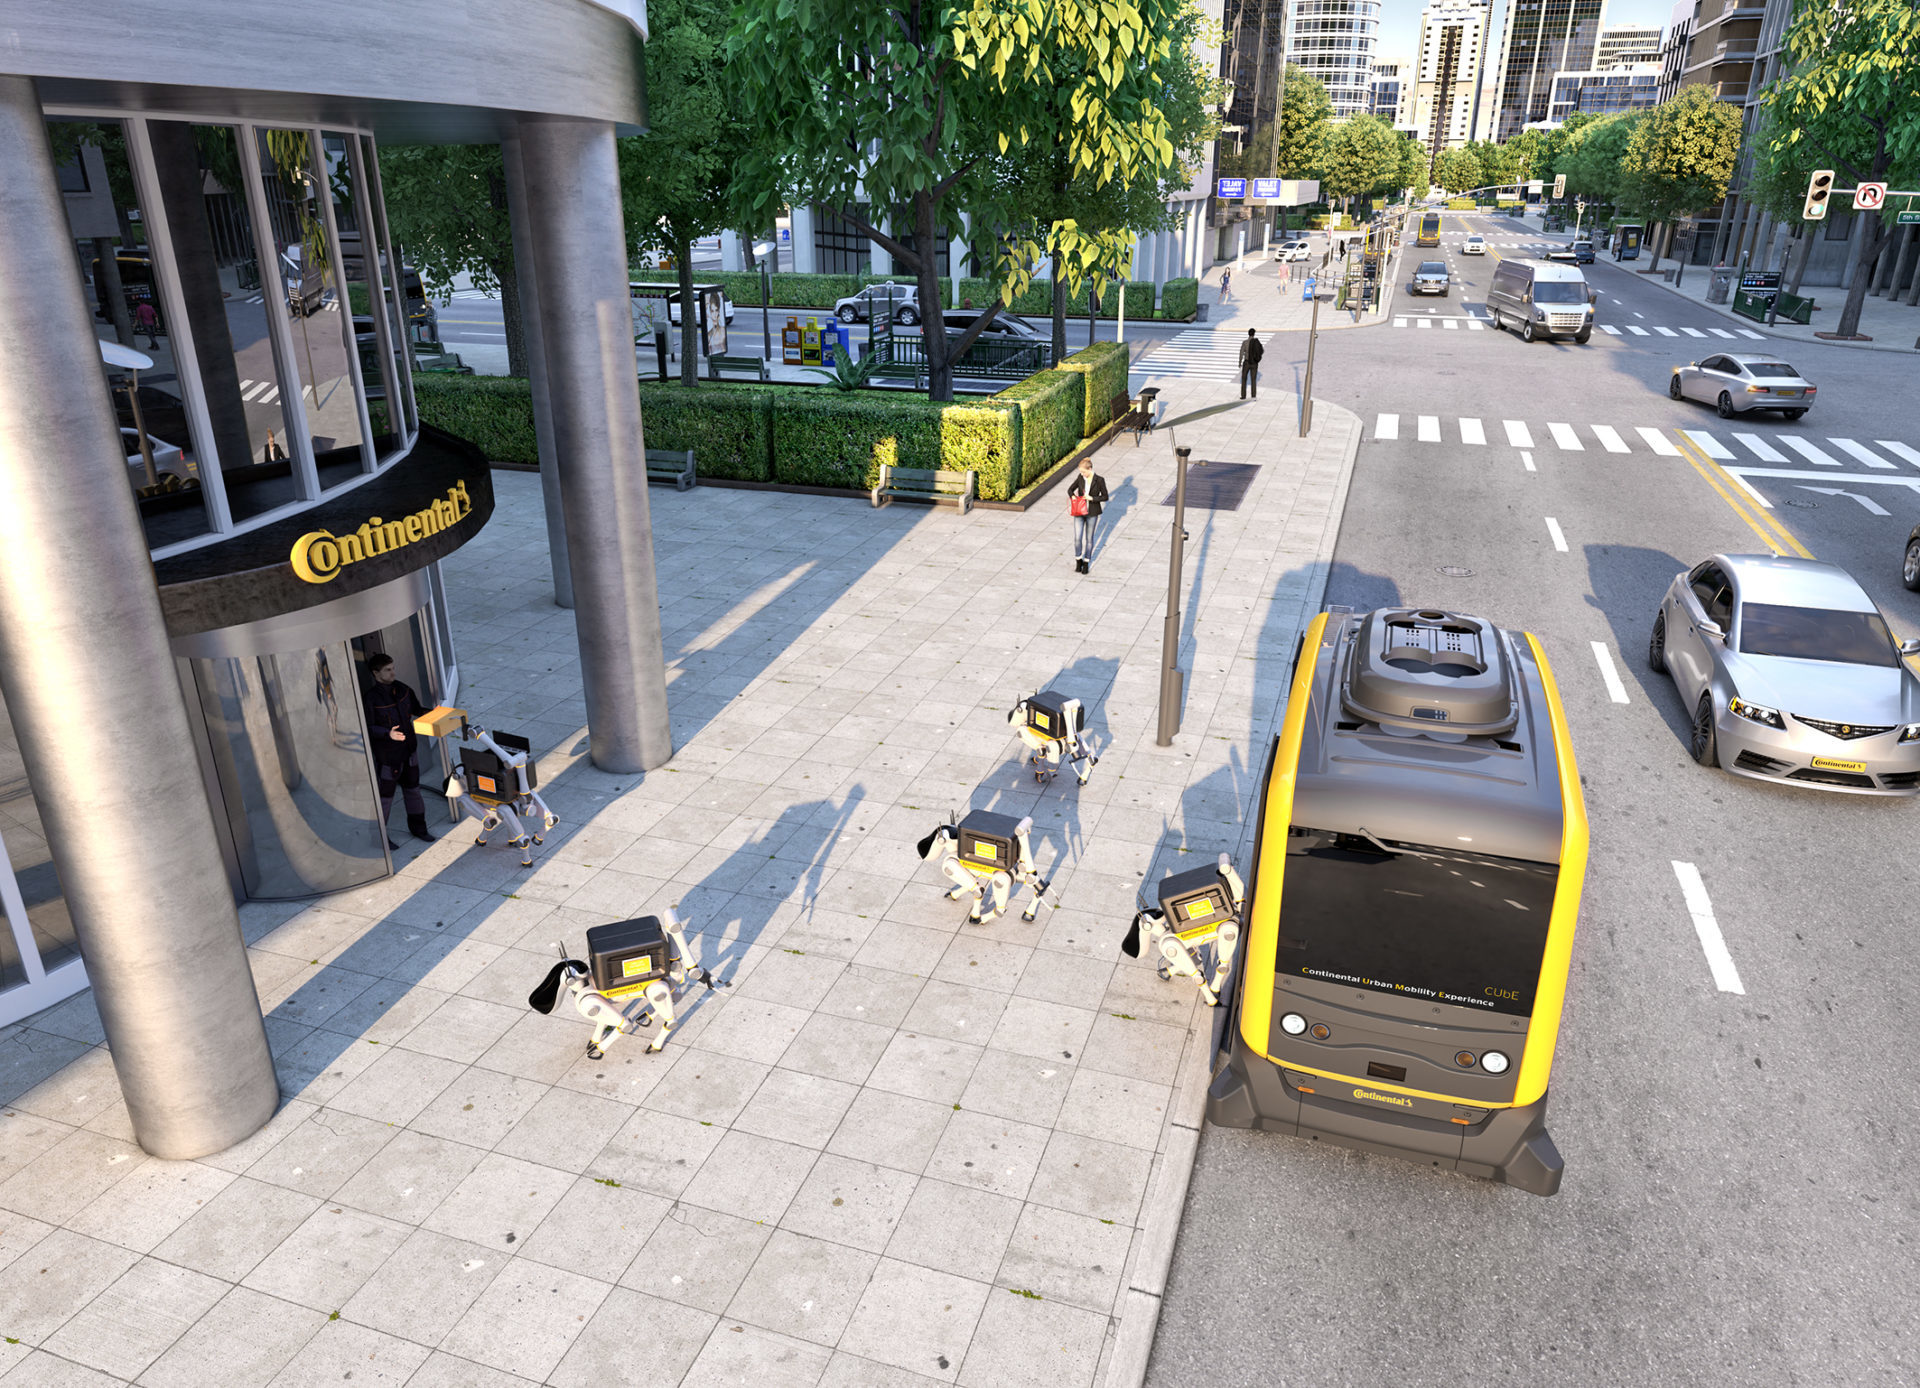 This robot delivery dog will hitch a ride in a driverless car to deliver your packages